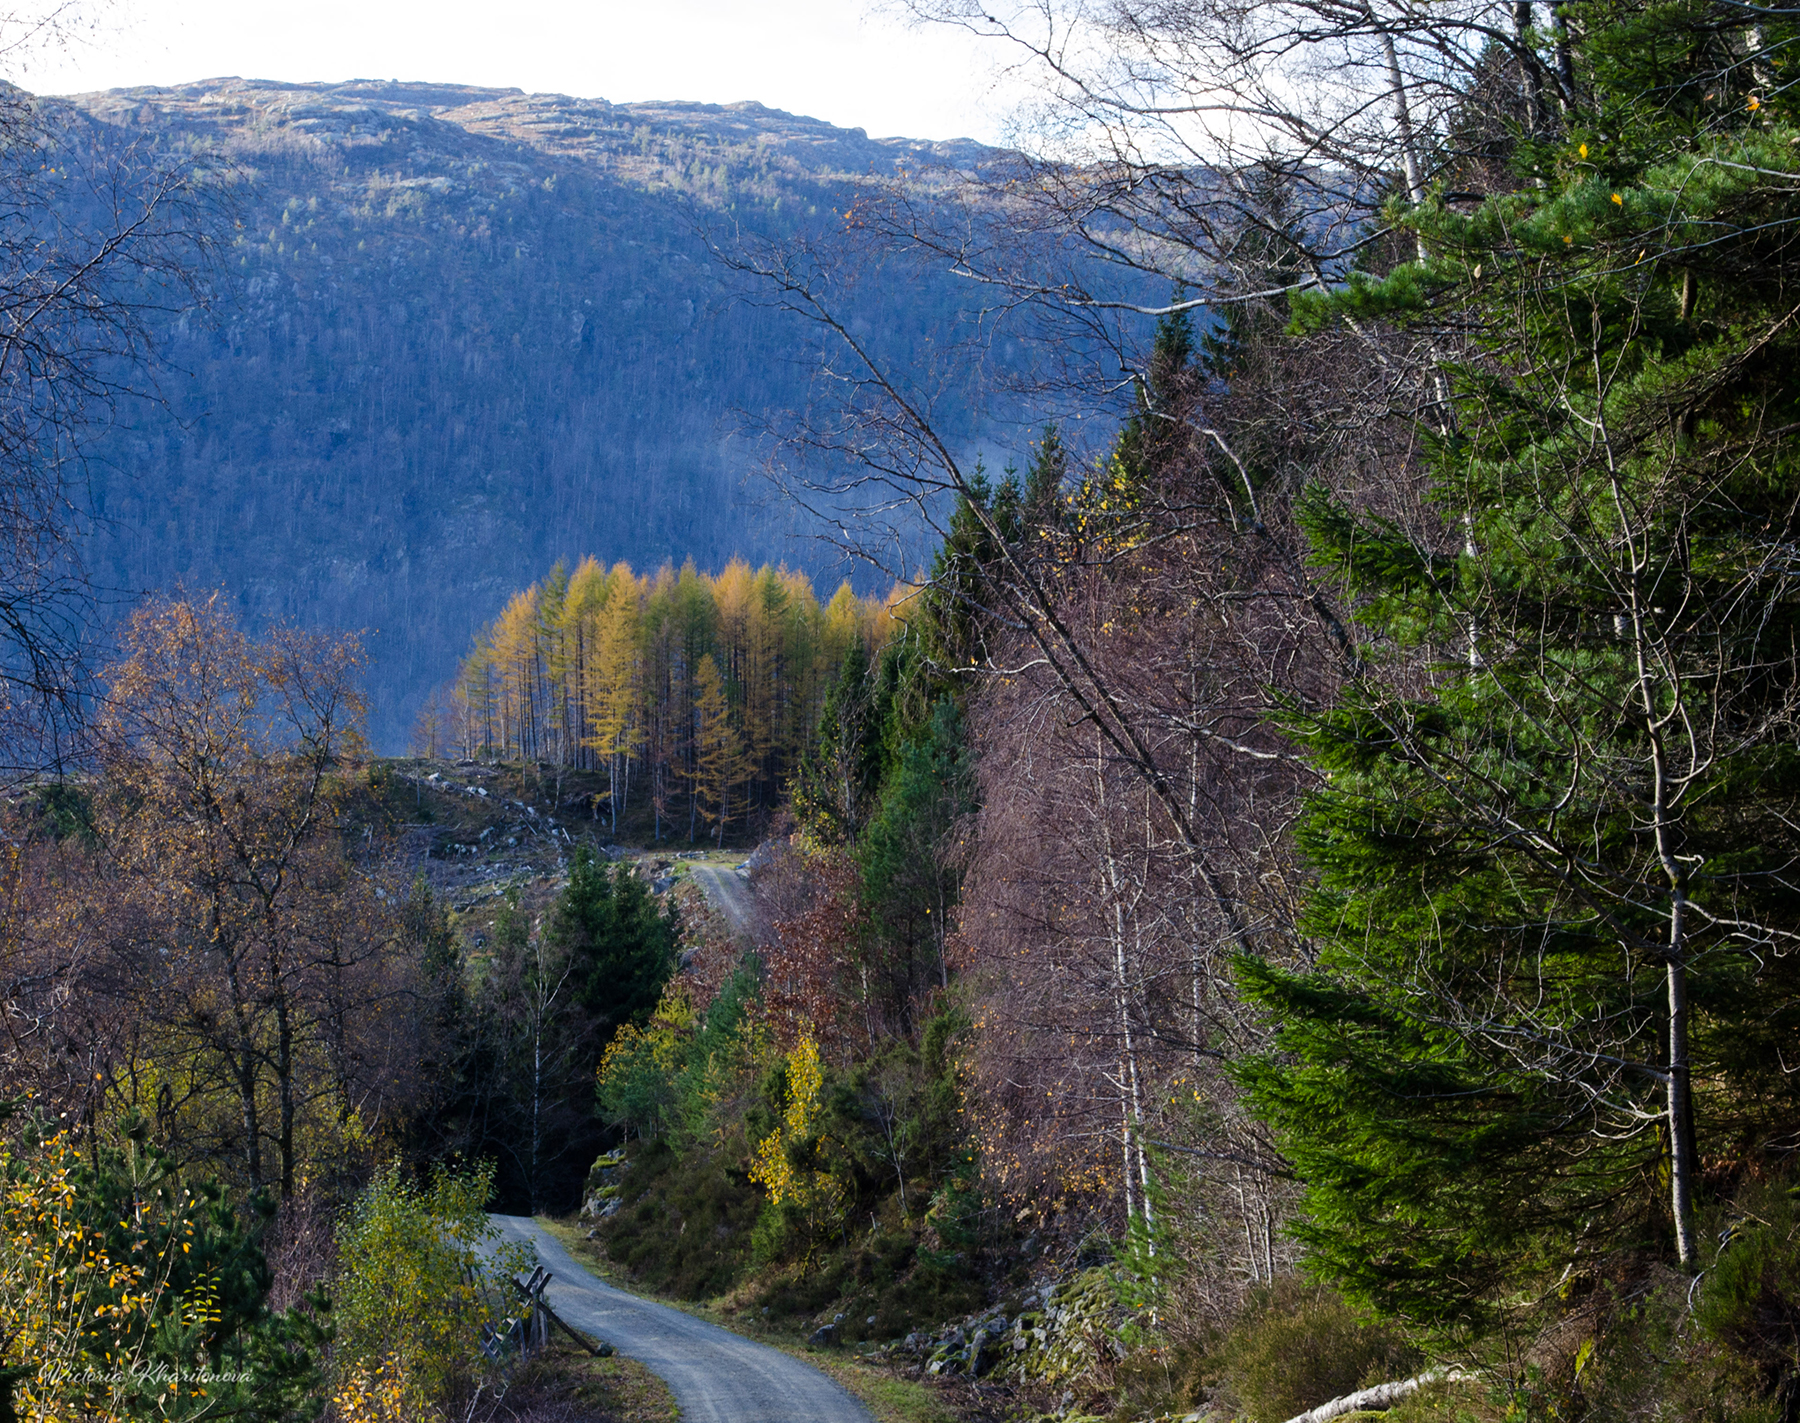 Ruberget